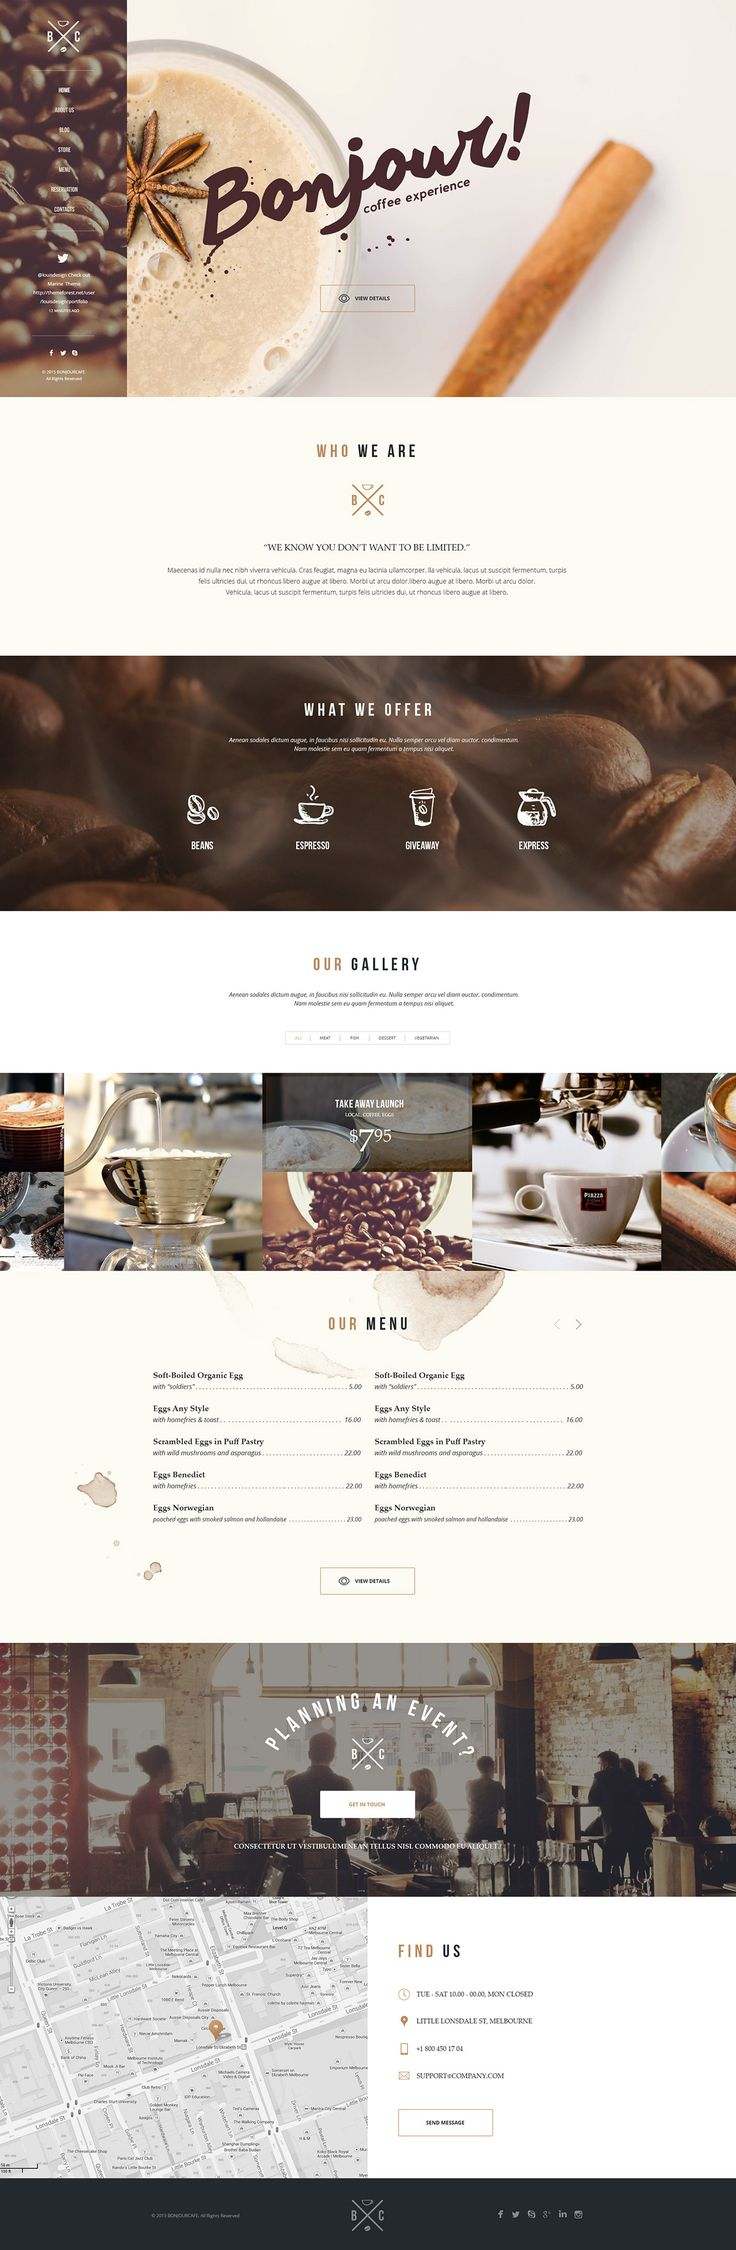 https://www.behance.net/gallery/27688397/Bonjour-Cafe-Responsive-HTML5-Template